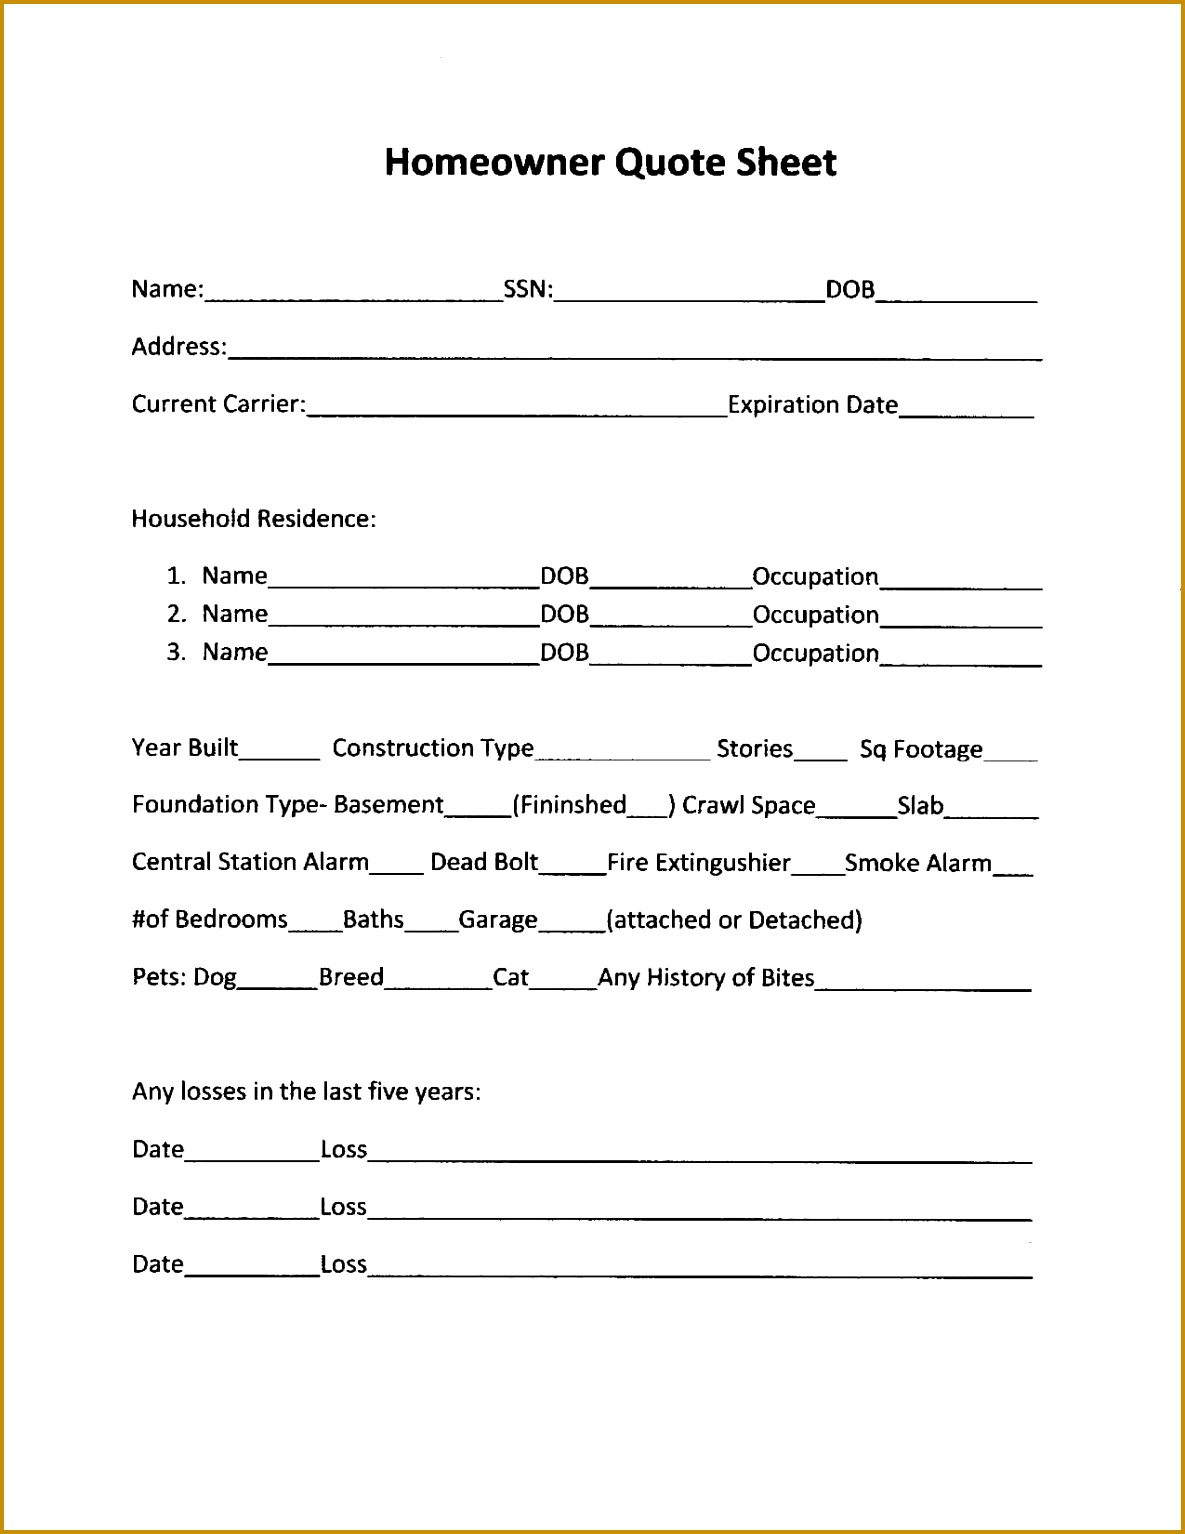 mercial Insurance Proposal Template How To Write The 15341185